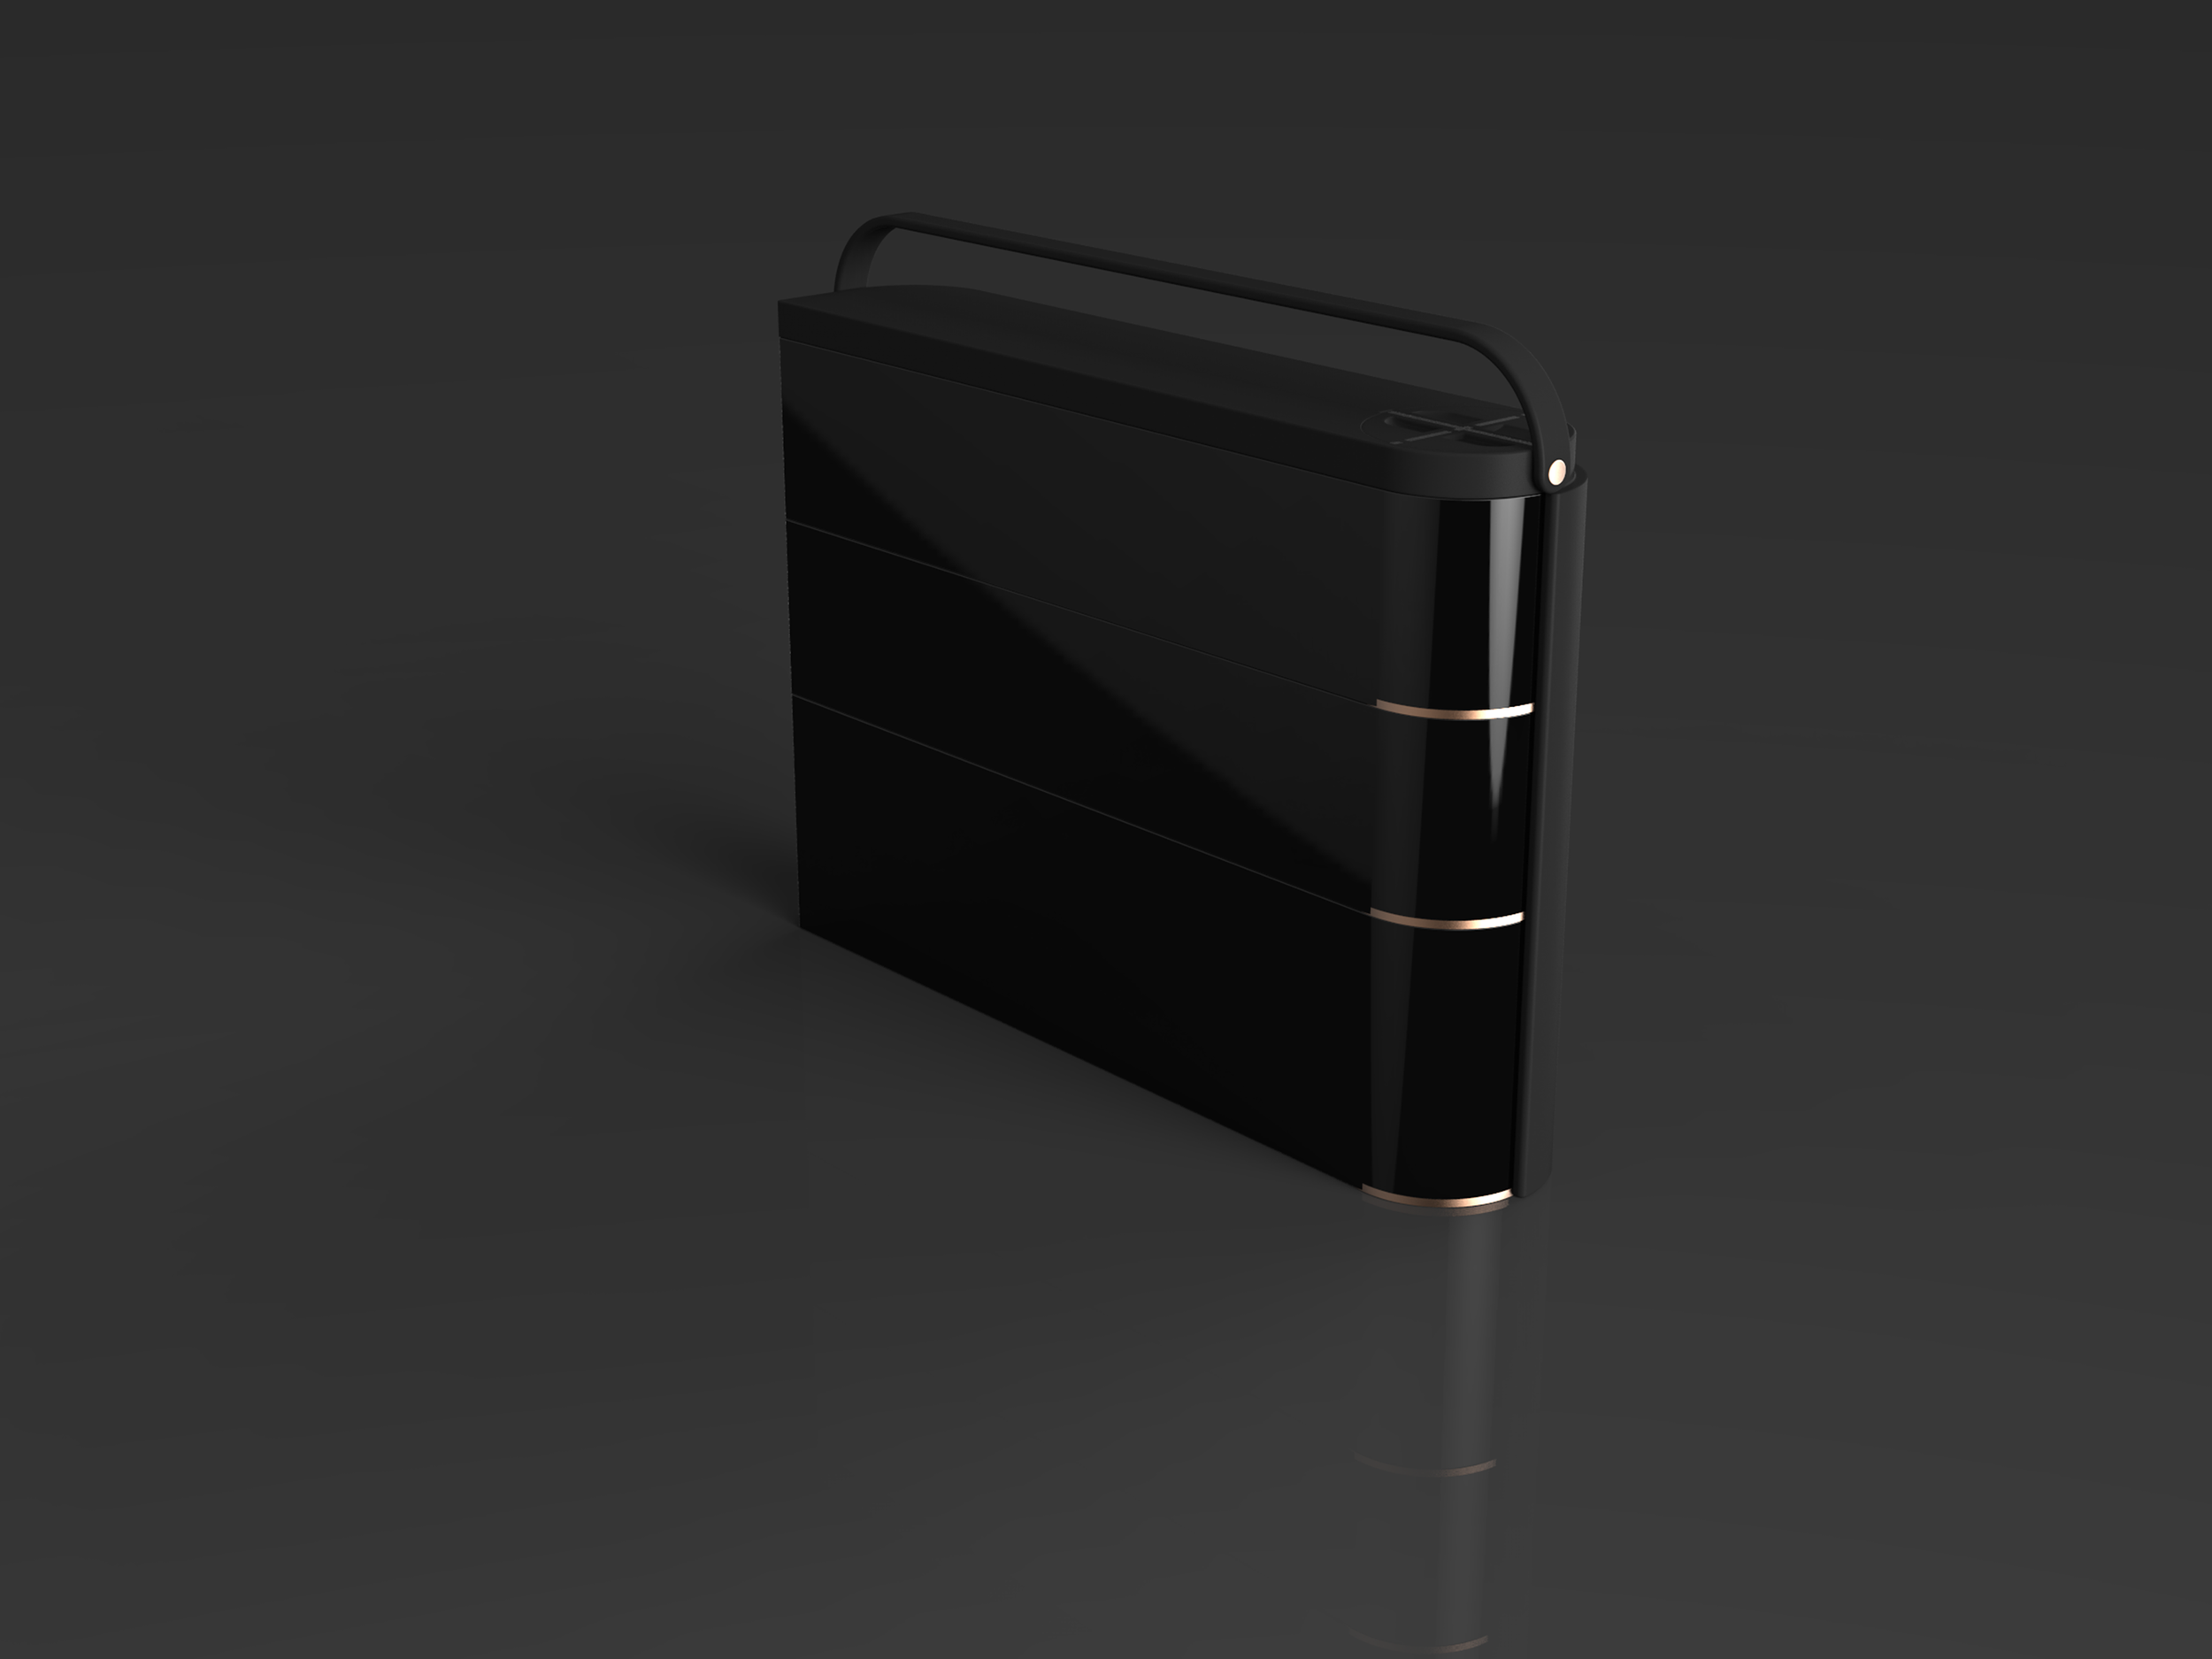 all black model with copper plated detail